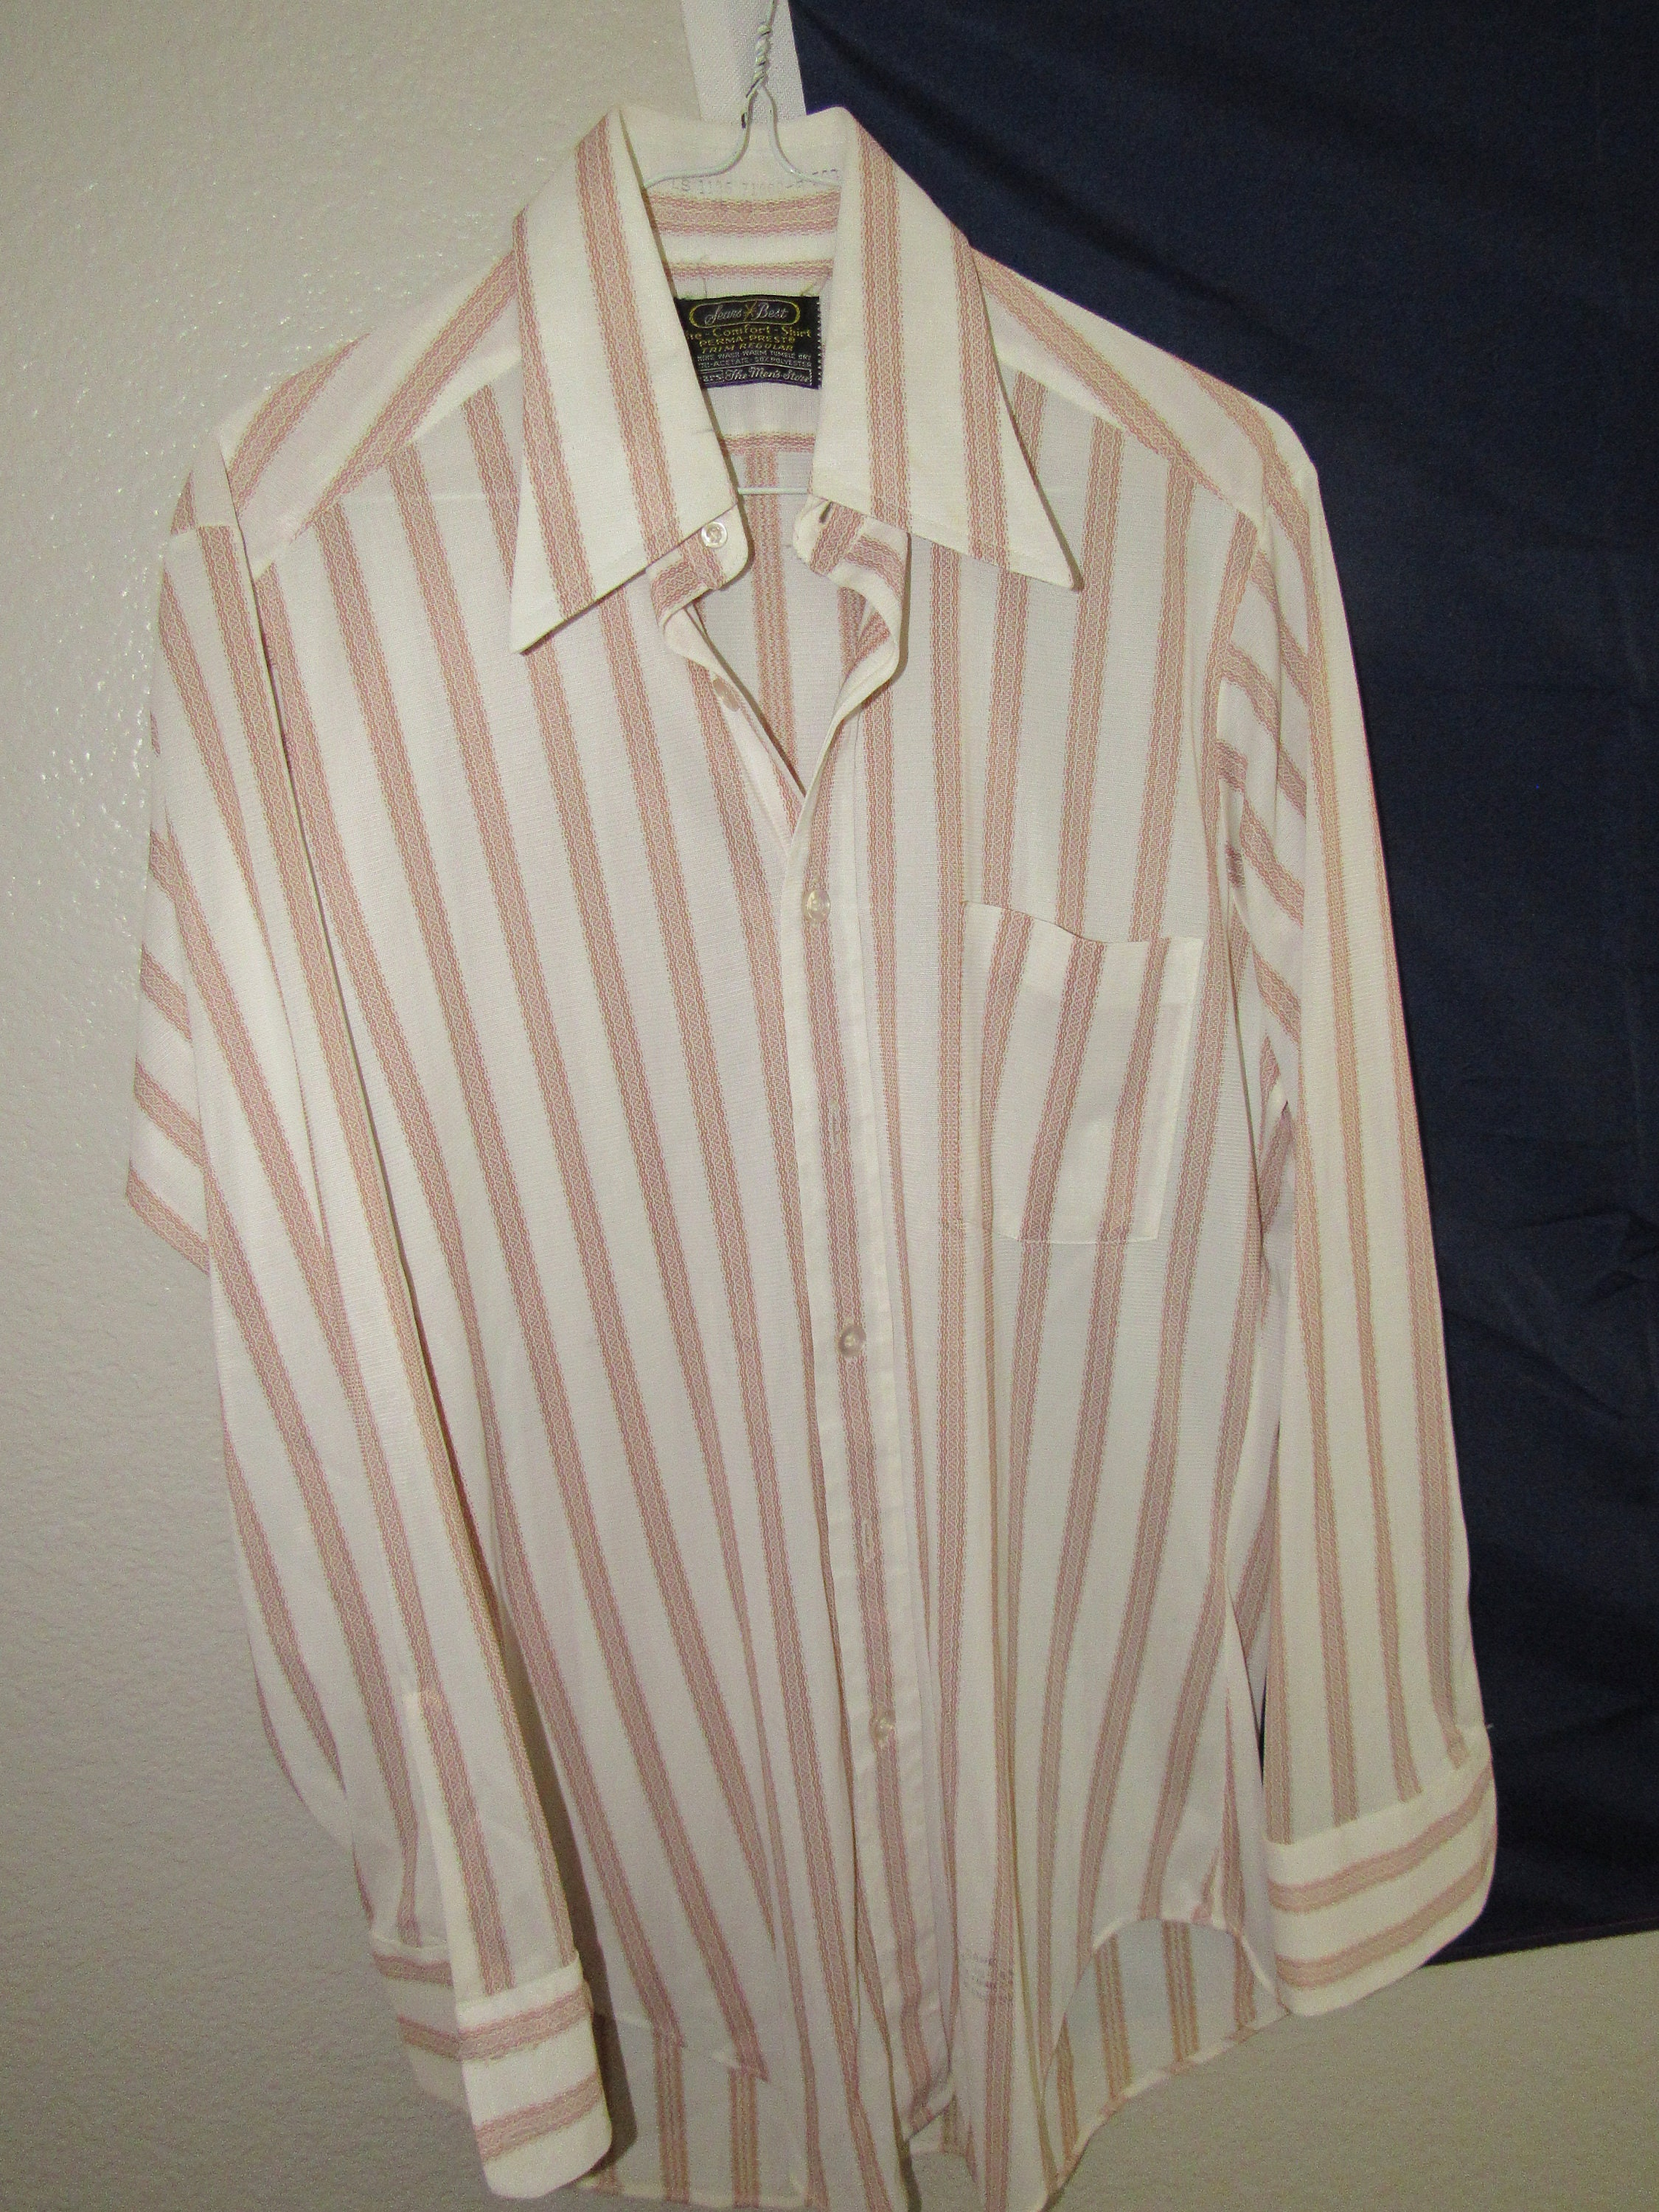 1970s Mens Shirt Styles – Vintage 70s Shirts for Guys Vintage Mens Sears Best The Comfort Shirt Sz 16-33 1970S Free Shipping $25.00 AT vintagedancer.com